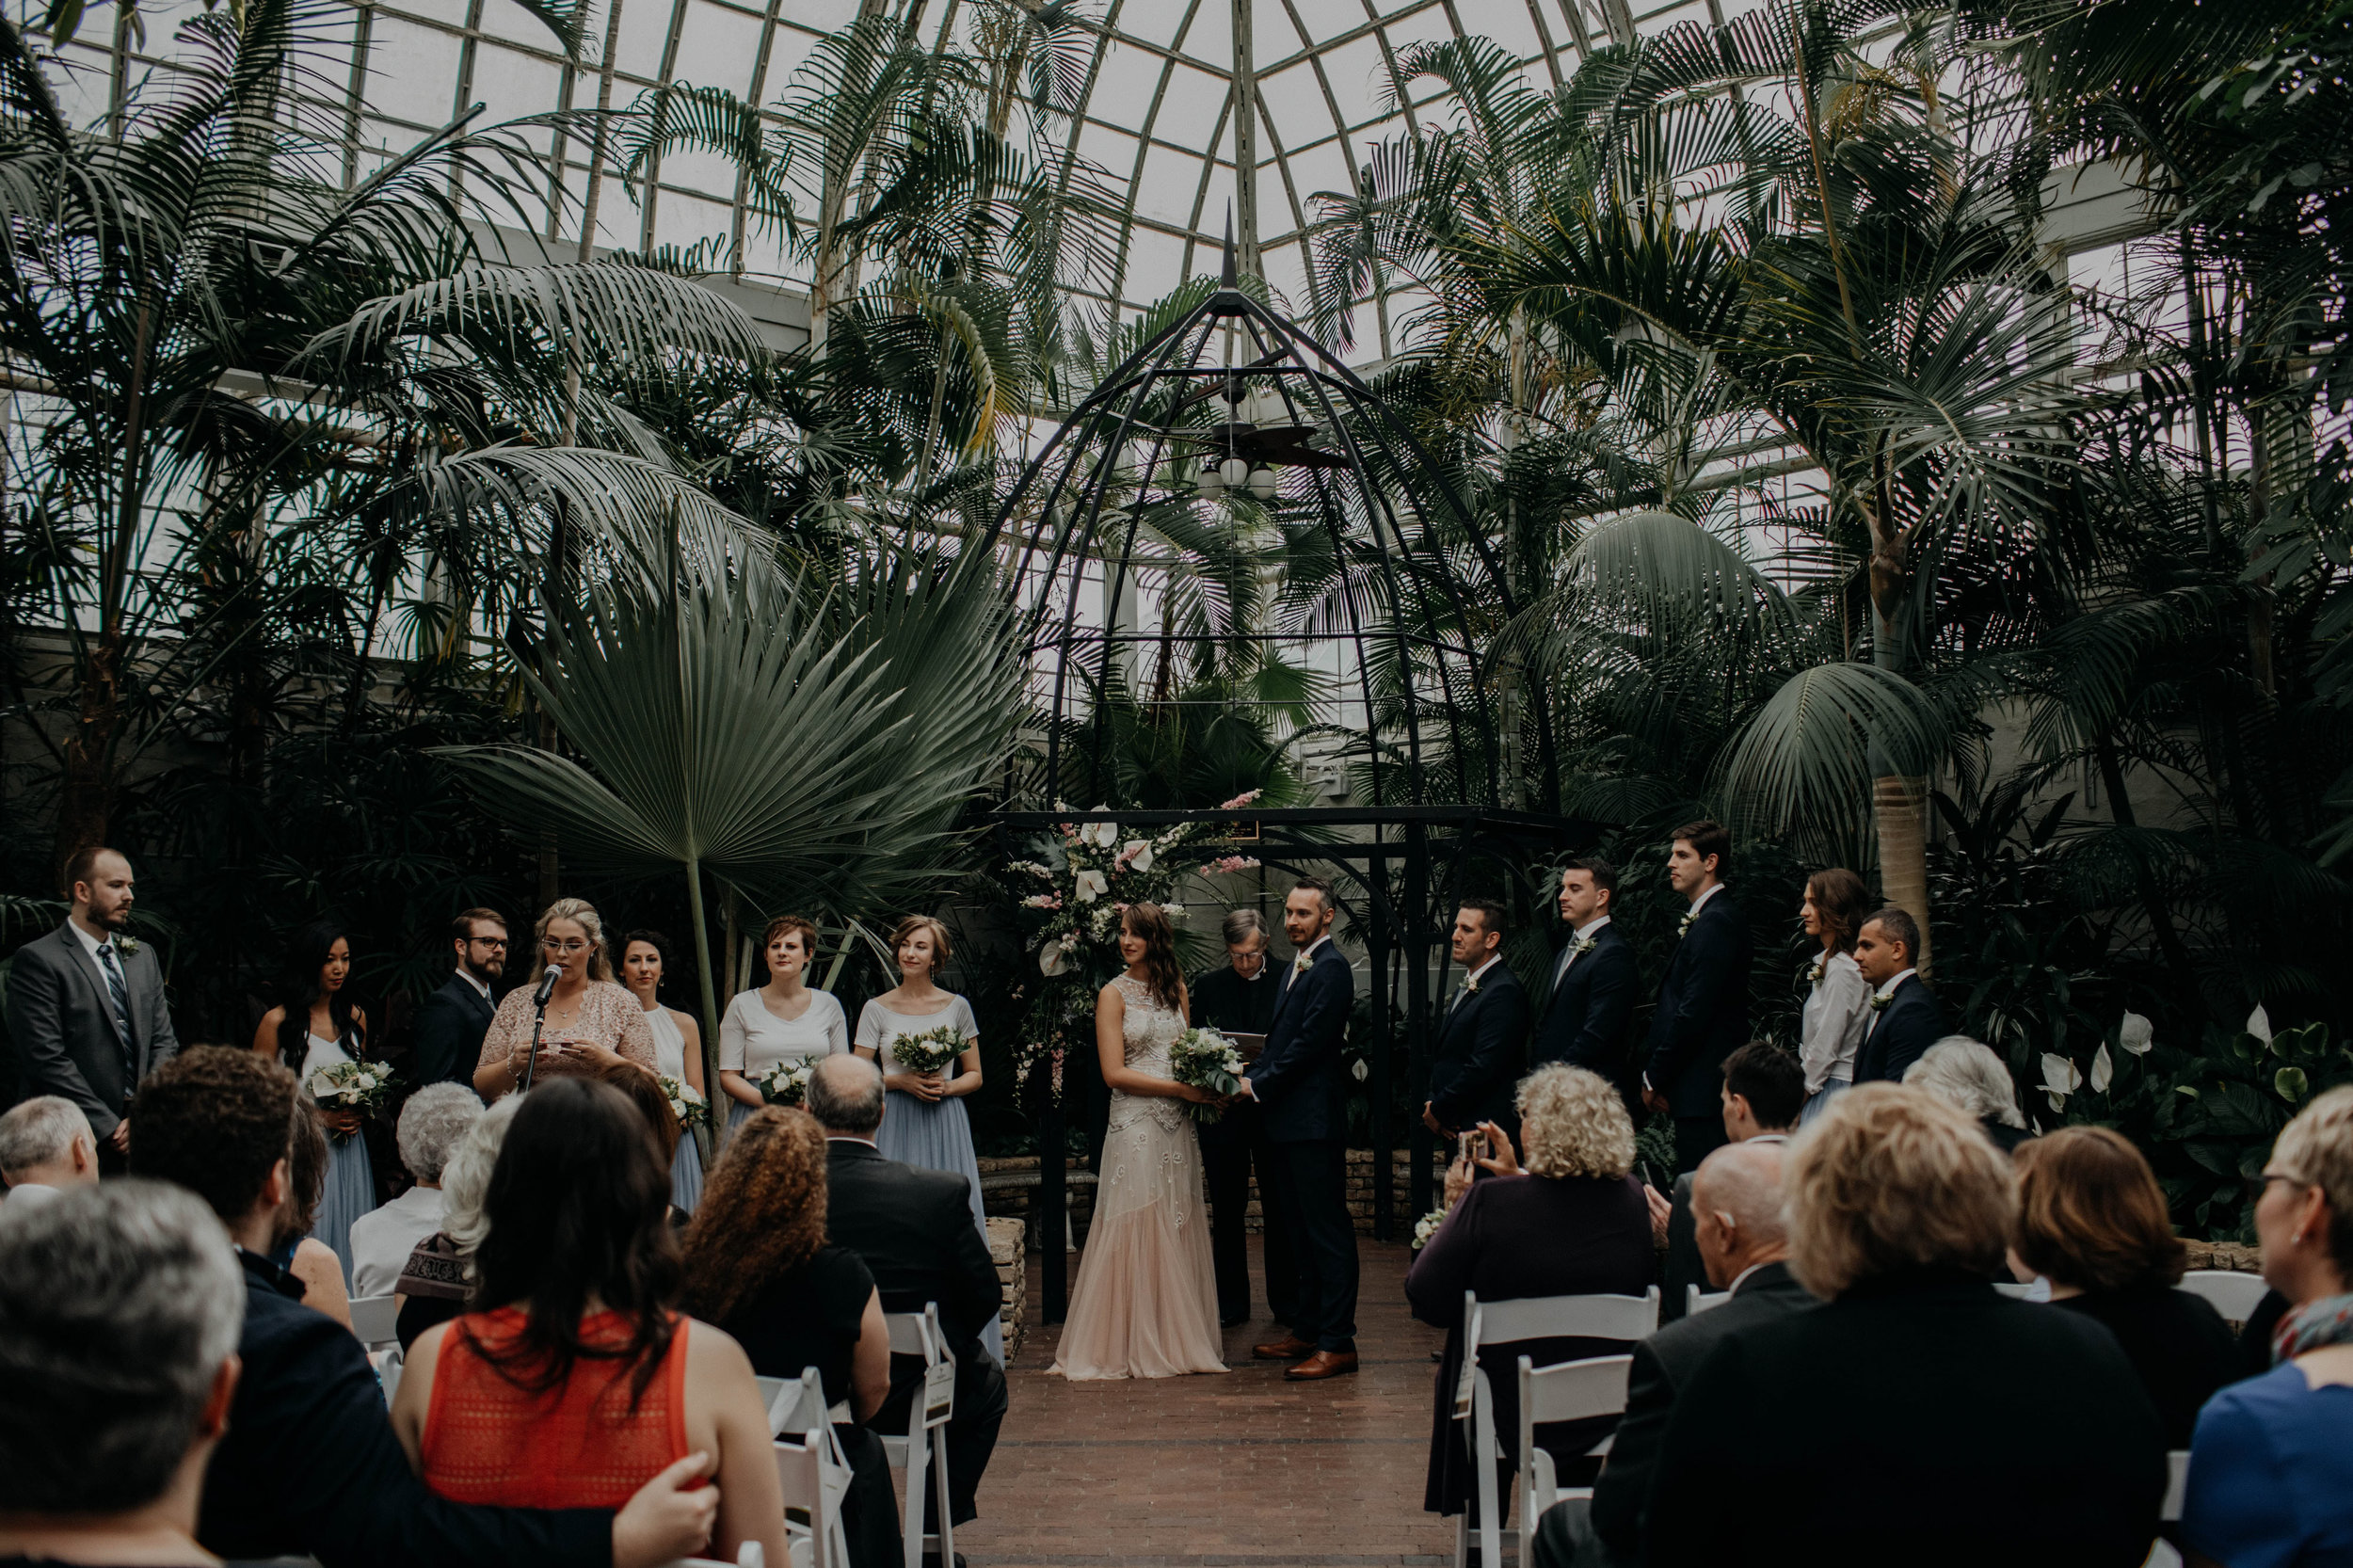 franklin park conservatory wedding columbus ohio wedding photographer grace e jones photography263.jpg